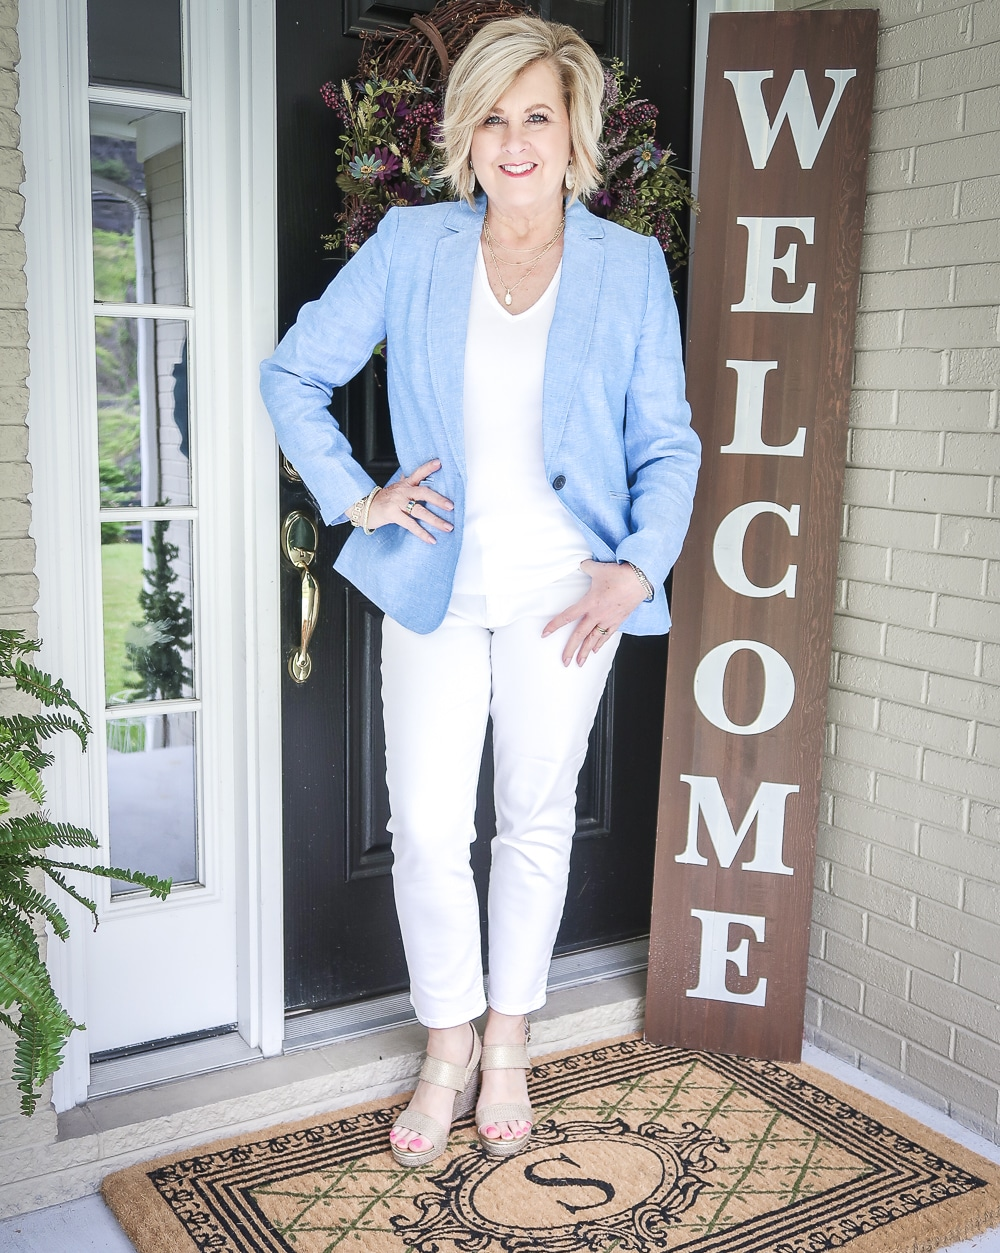 Fashion Blogger 50 Is Not Old is wearing an all white outfit with a blue linen blazer from Talbots and gold espadrilles from Walmart